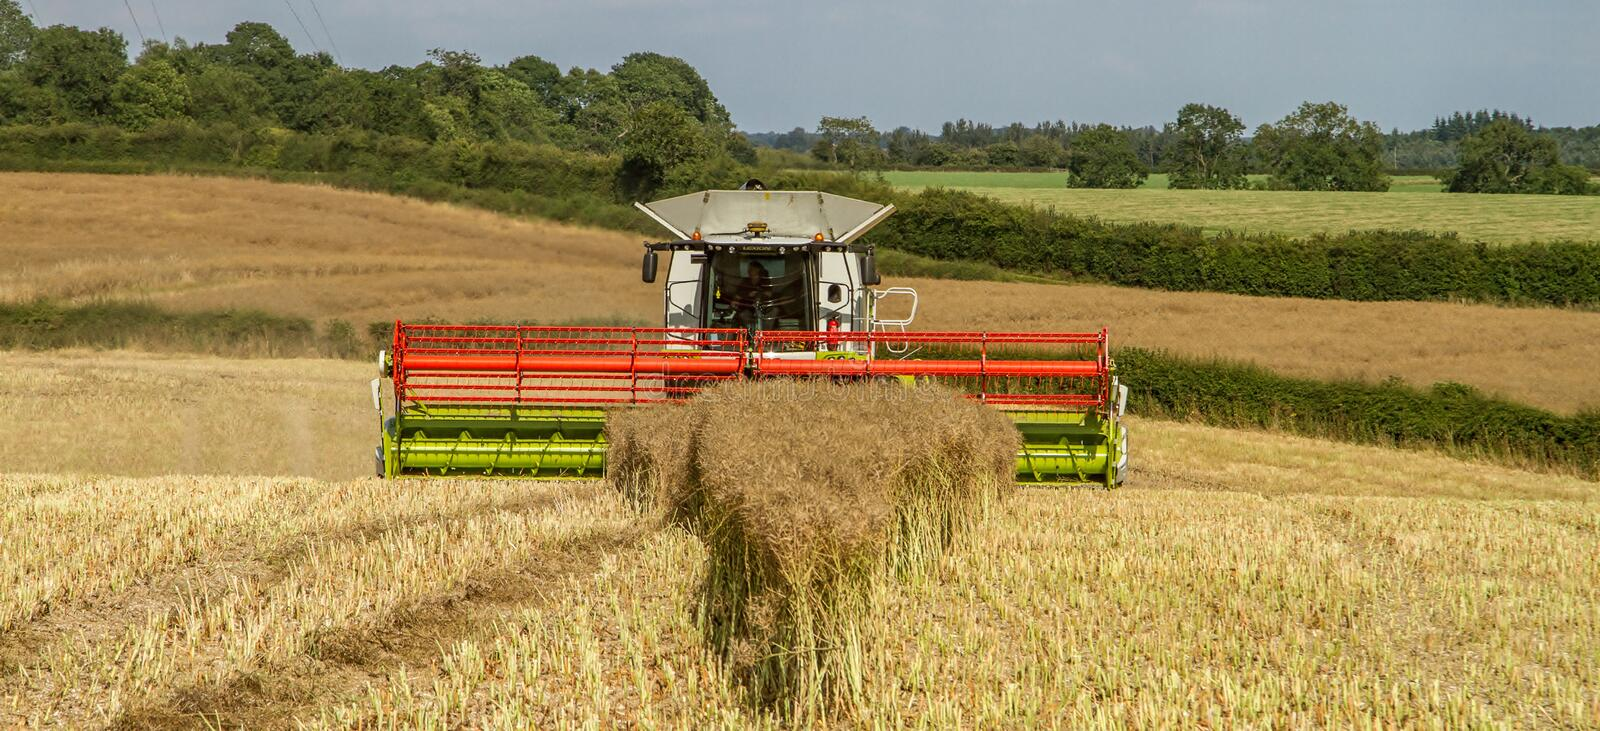 Modern claas combine harvester header cutting crops. Modern claas 770 combine harvester cutting crops oilseed working the field close up of header royalty free stock photo